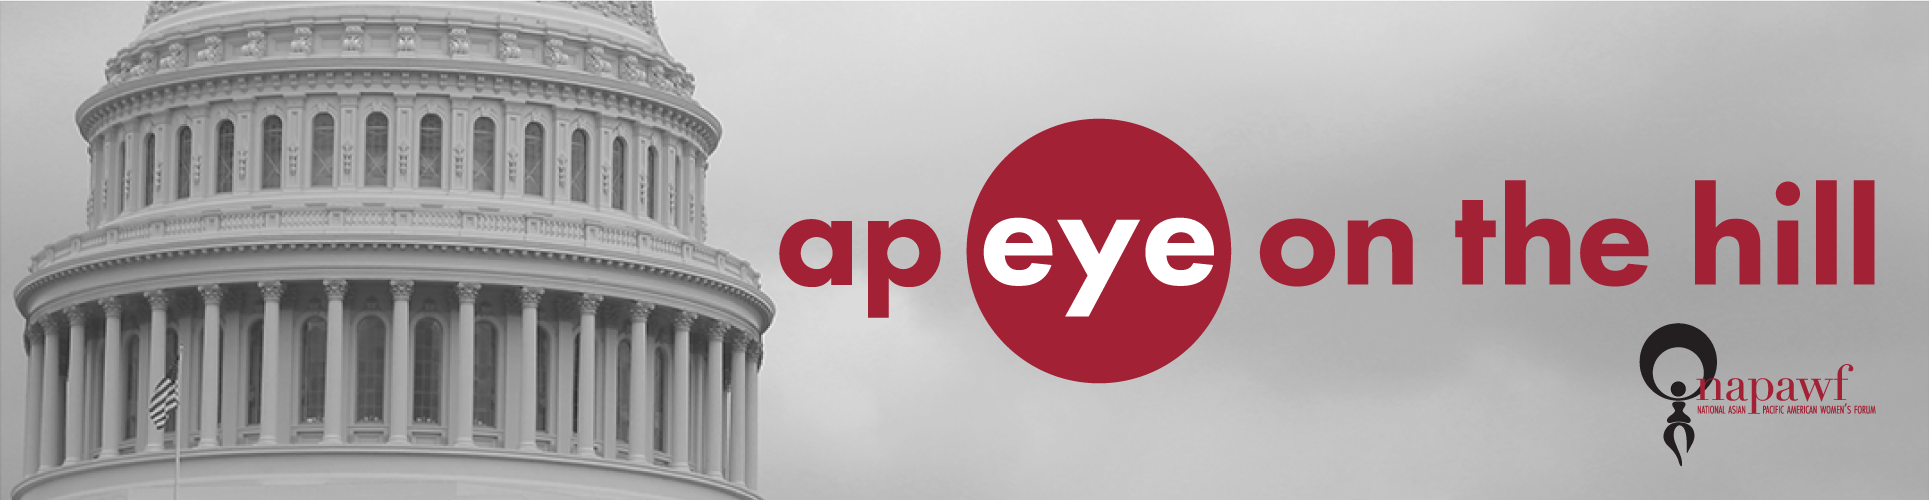 AP Eye on the Hill, logo against a stark, colorless photo of the capitol dome